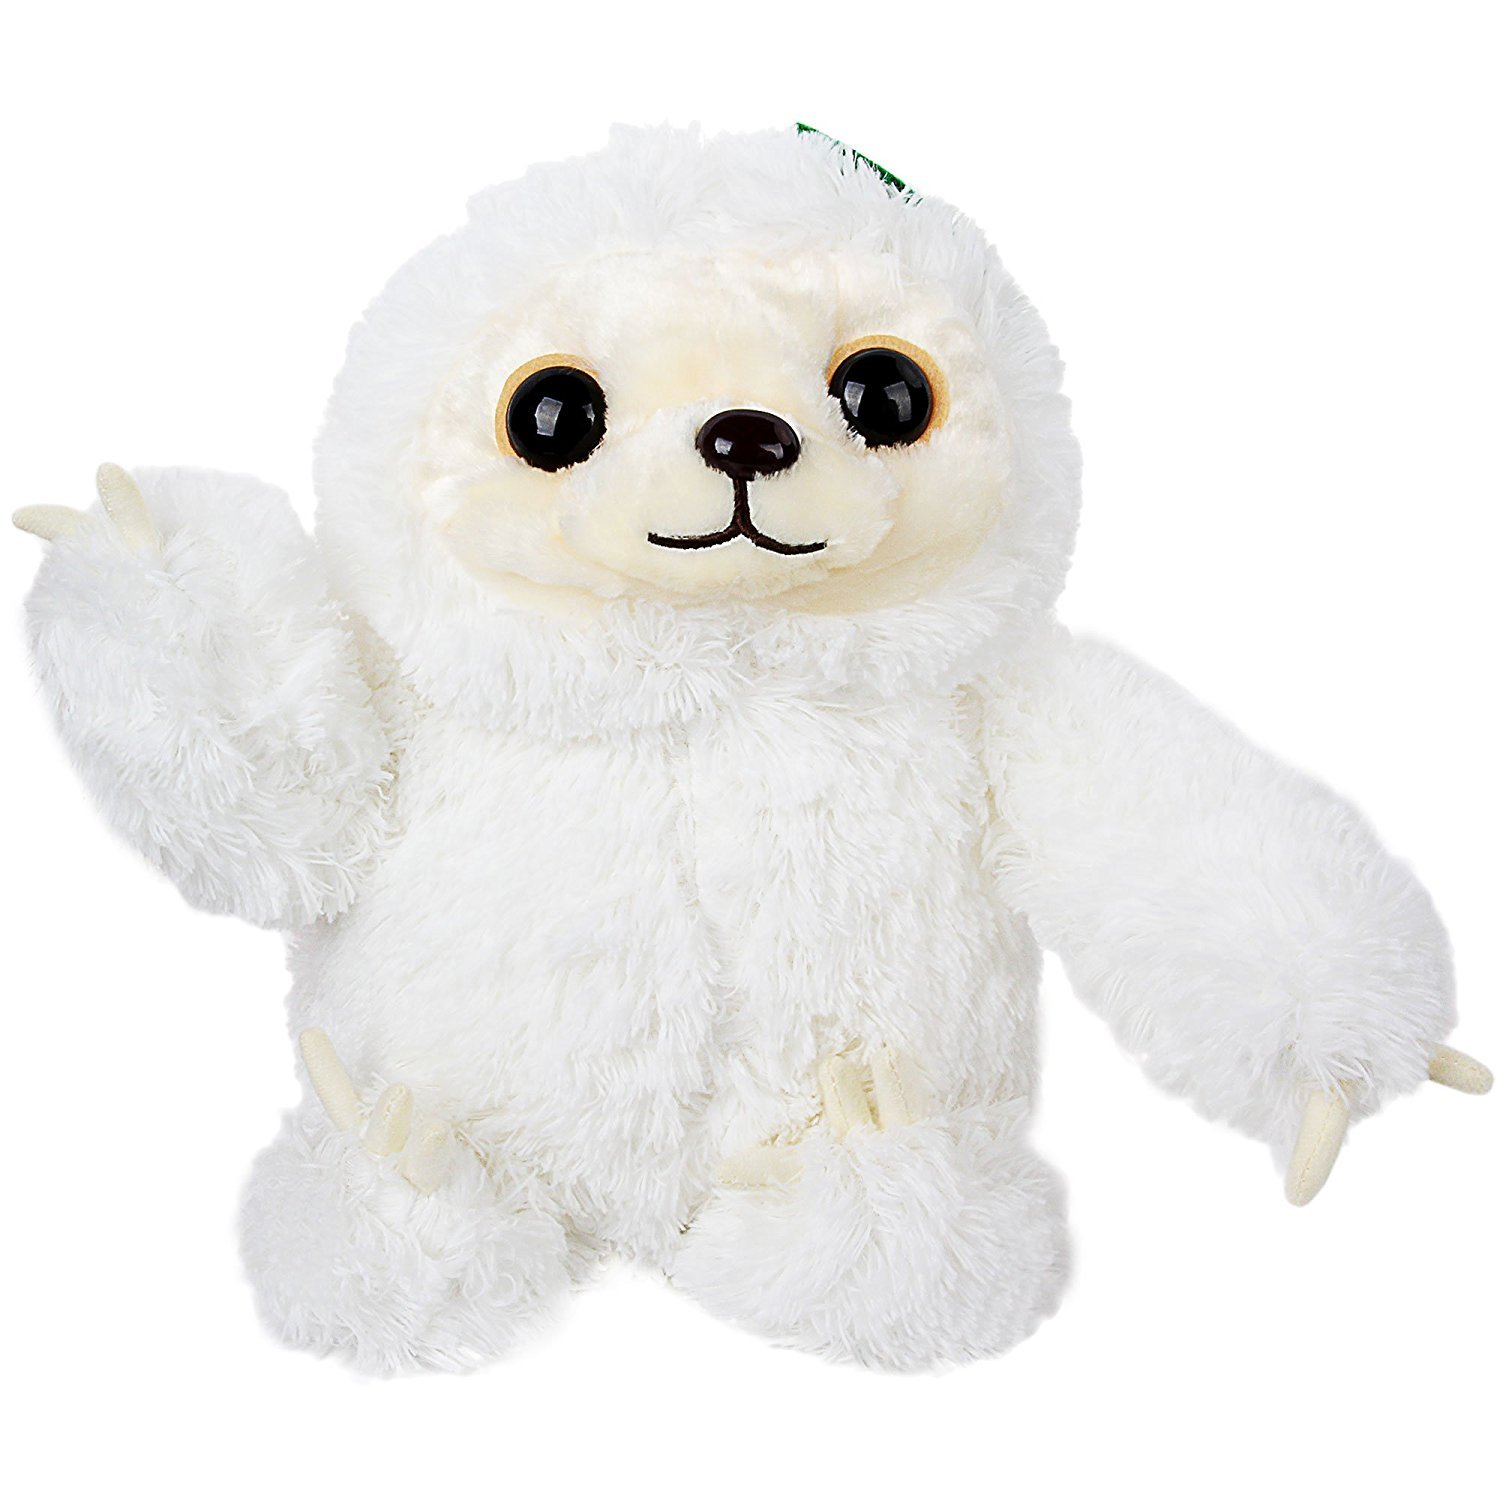 Amazon Sloth Stuffed Animals Fluffy Plush Not Easy Shed Fur Animal Soft Gifts Toy For Kids 16 White Toys Games